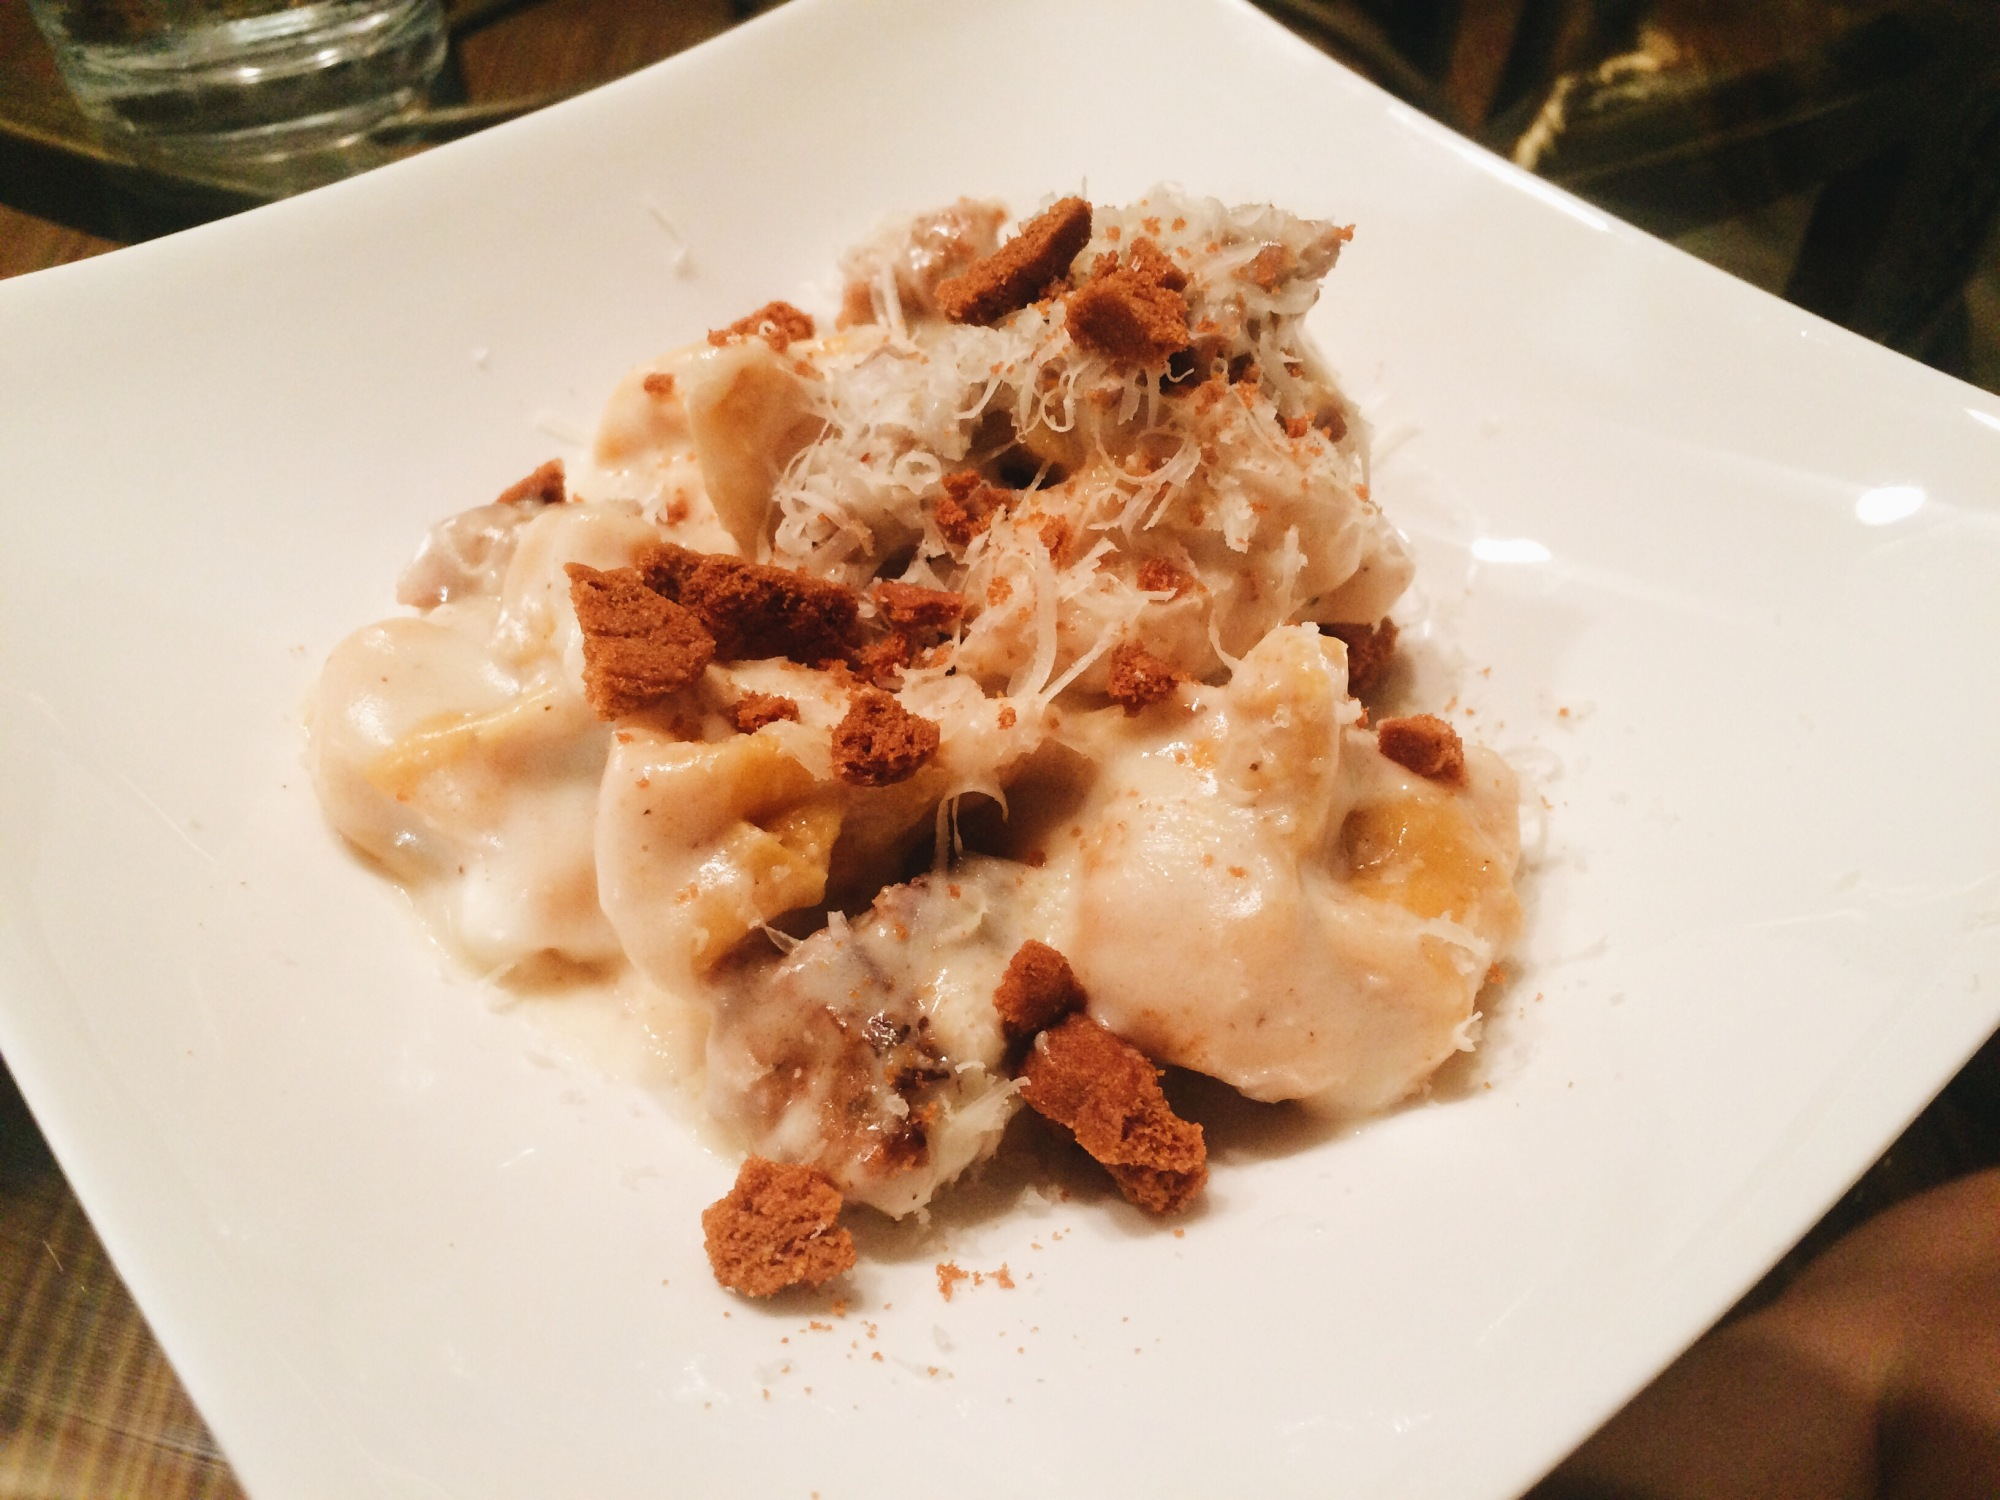 Pumpkin Sacchetti Pasta with crumbled sausage and a bechamel sauce with crumbled amaretti